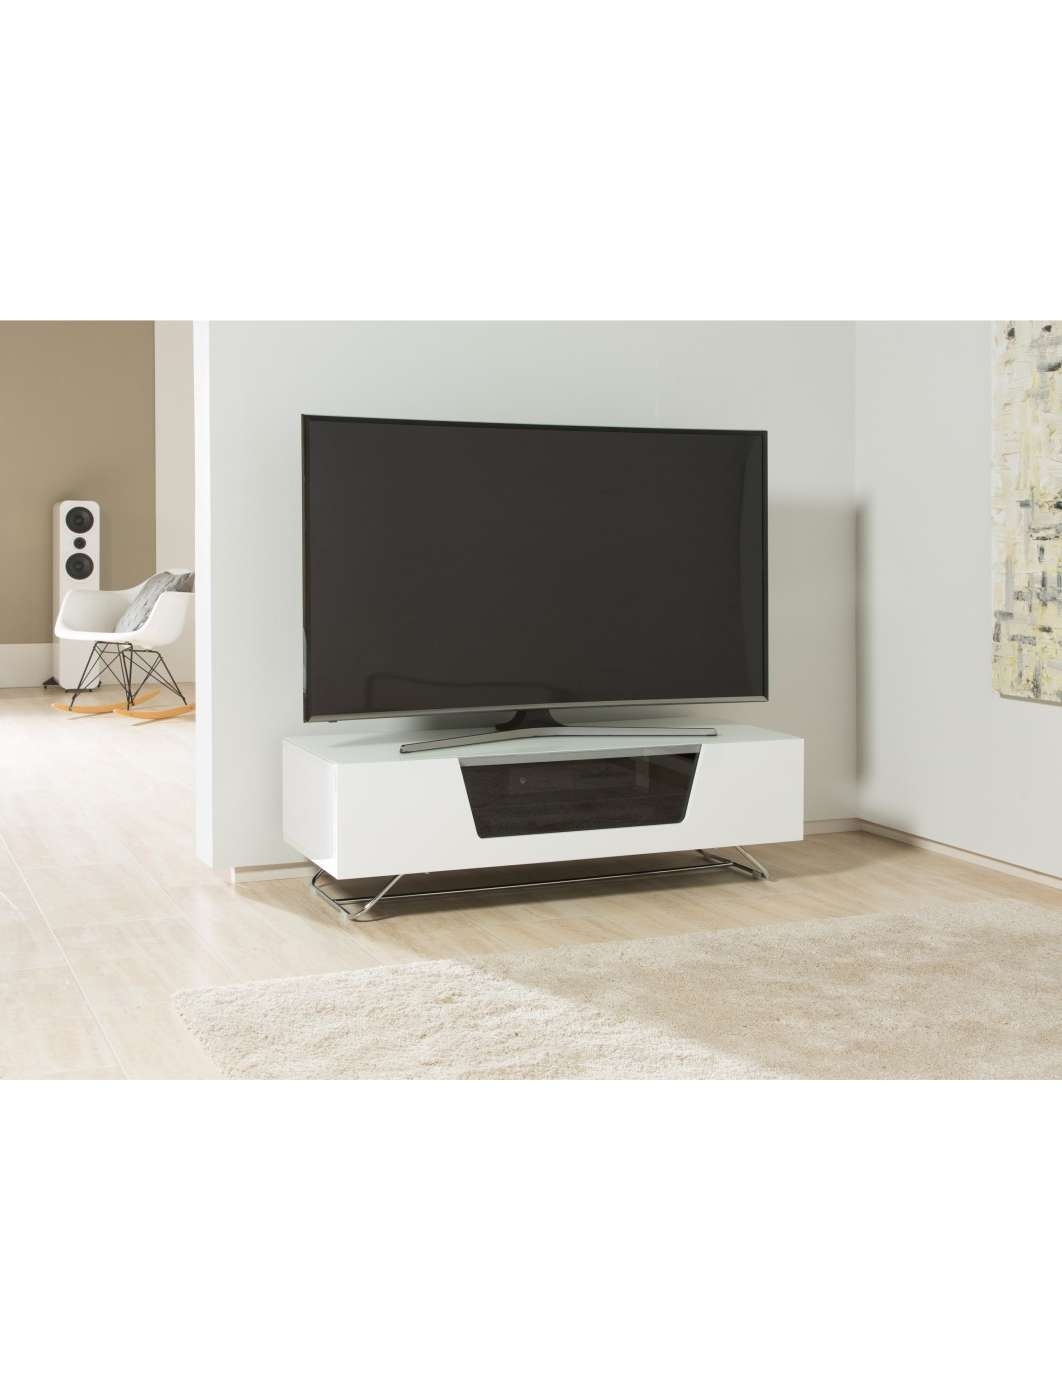 Alphason Chromium Tv Stand Cro2 1200Cb Wht | 121 Tv Mounts With Regard To Alphason Tv Cabinets (View 9 of 20)